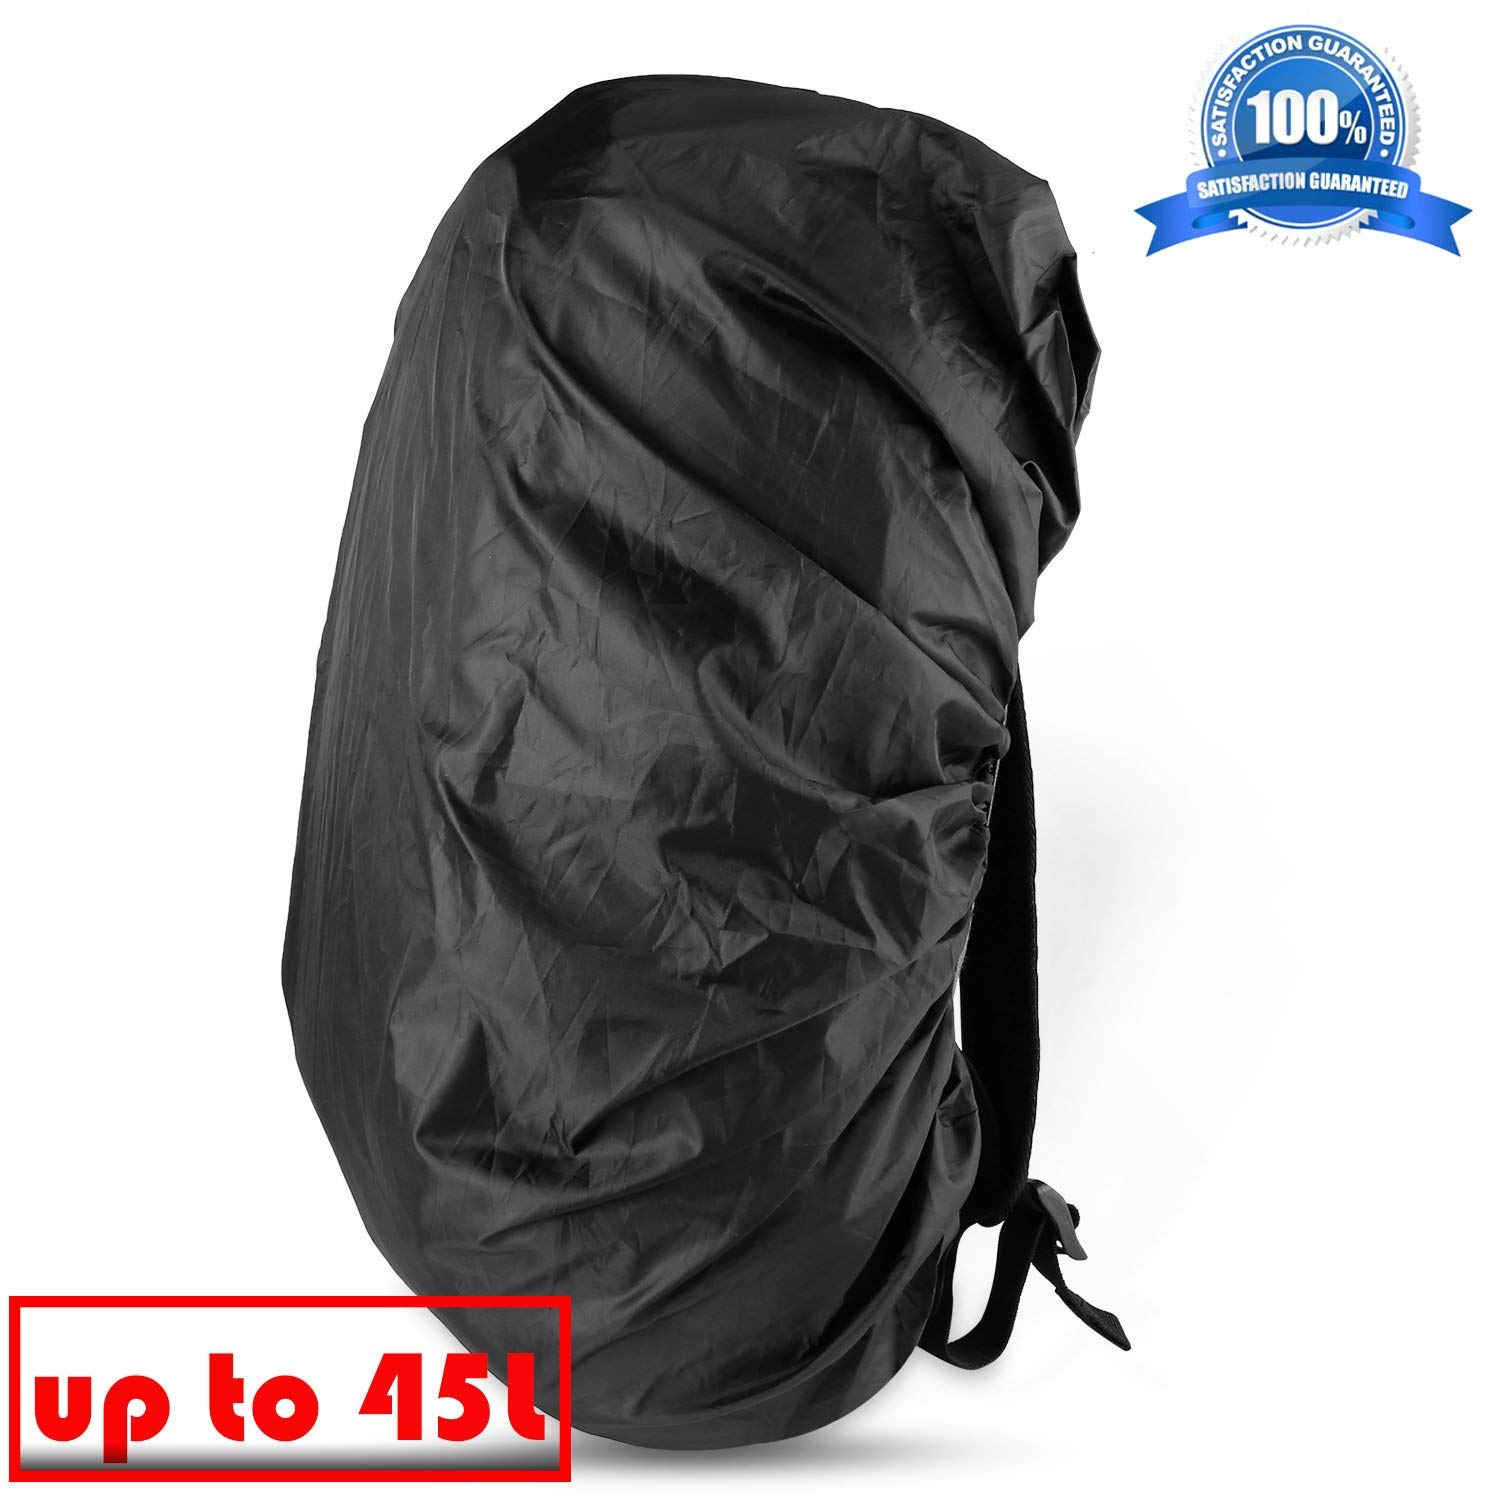 Traveling Outdoor Activities Camping Natuworld Pure Color Nylon Backpack Rucksack Rain Cover Waterproof Dustproof Cover for Hiking Fit for 35L//45L//60L//70L//80L Available